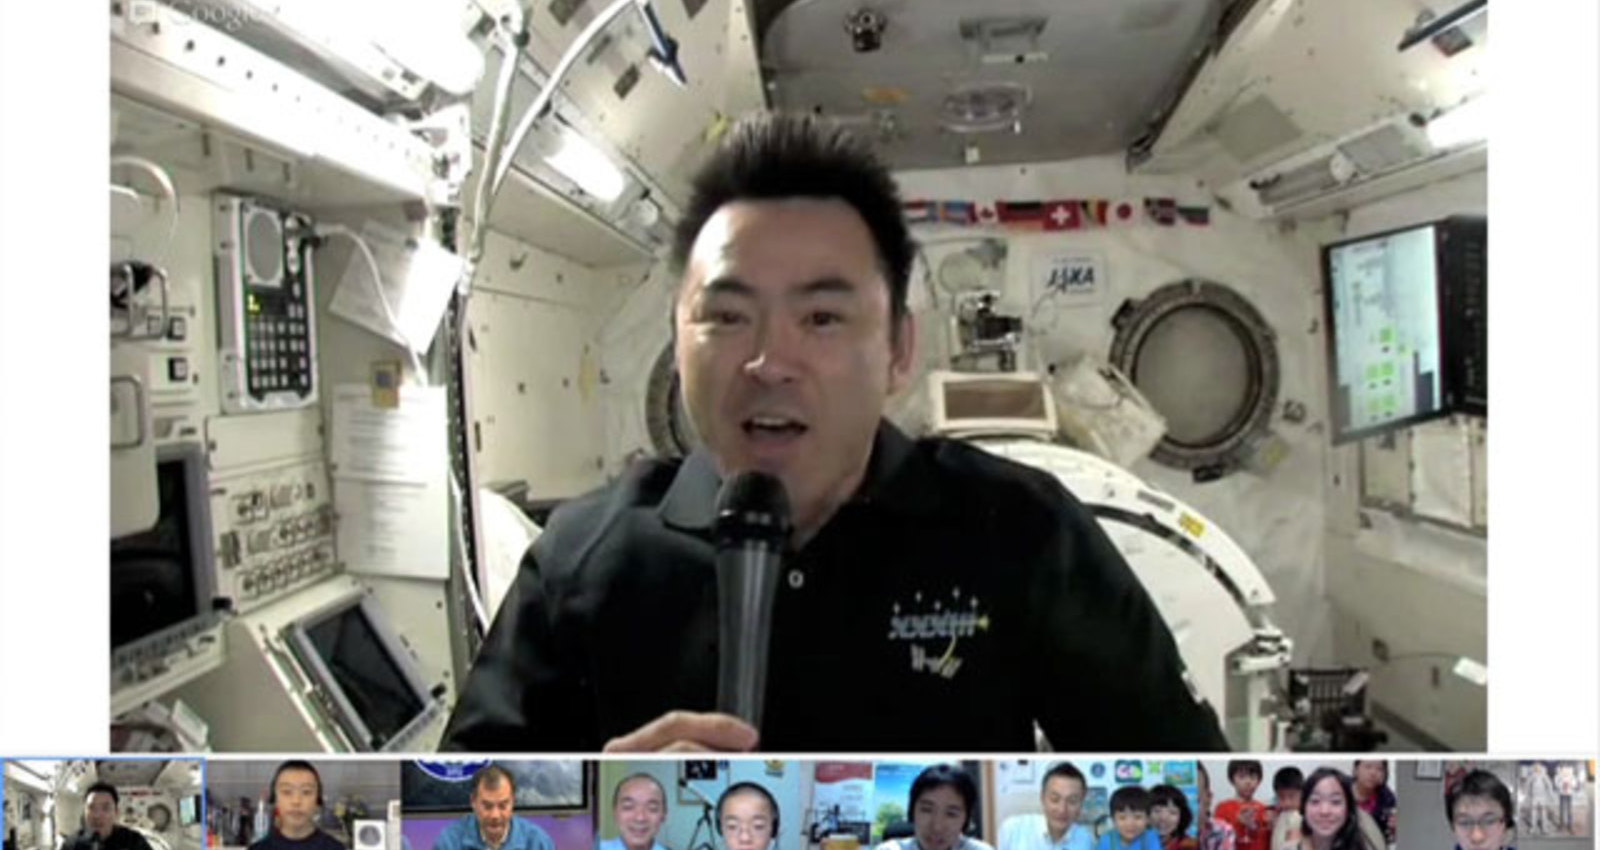 THE SPACE HANGOUT powered by Google